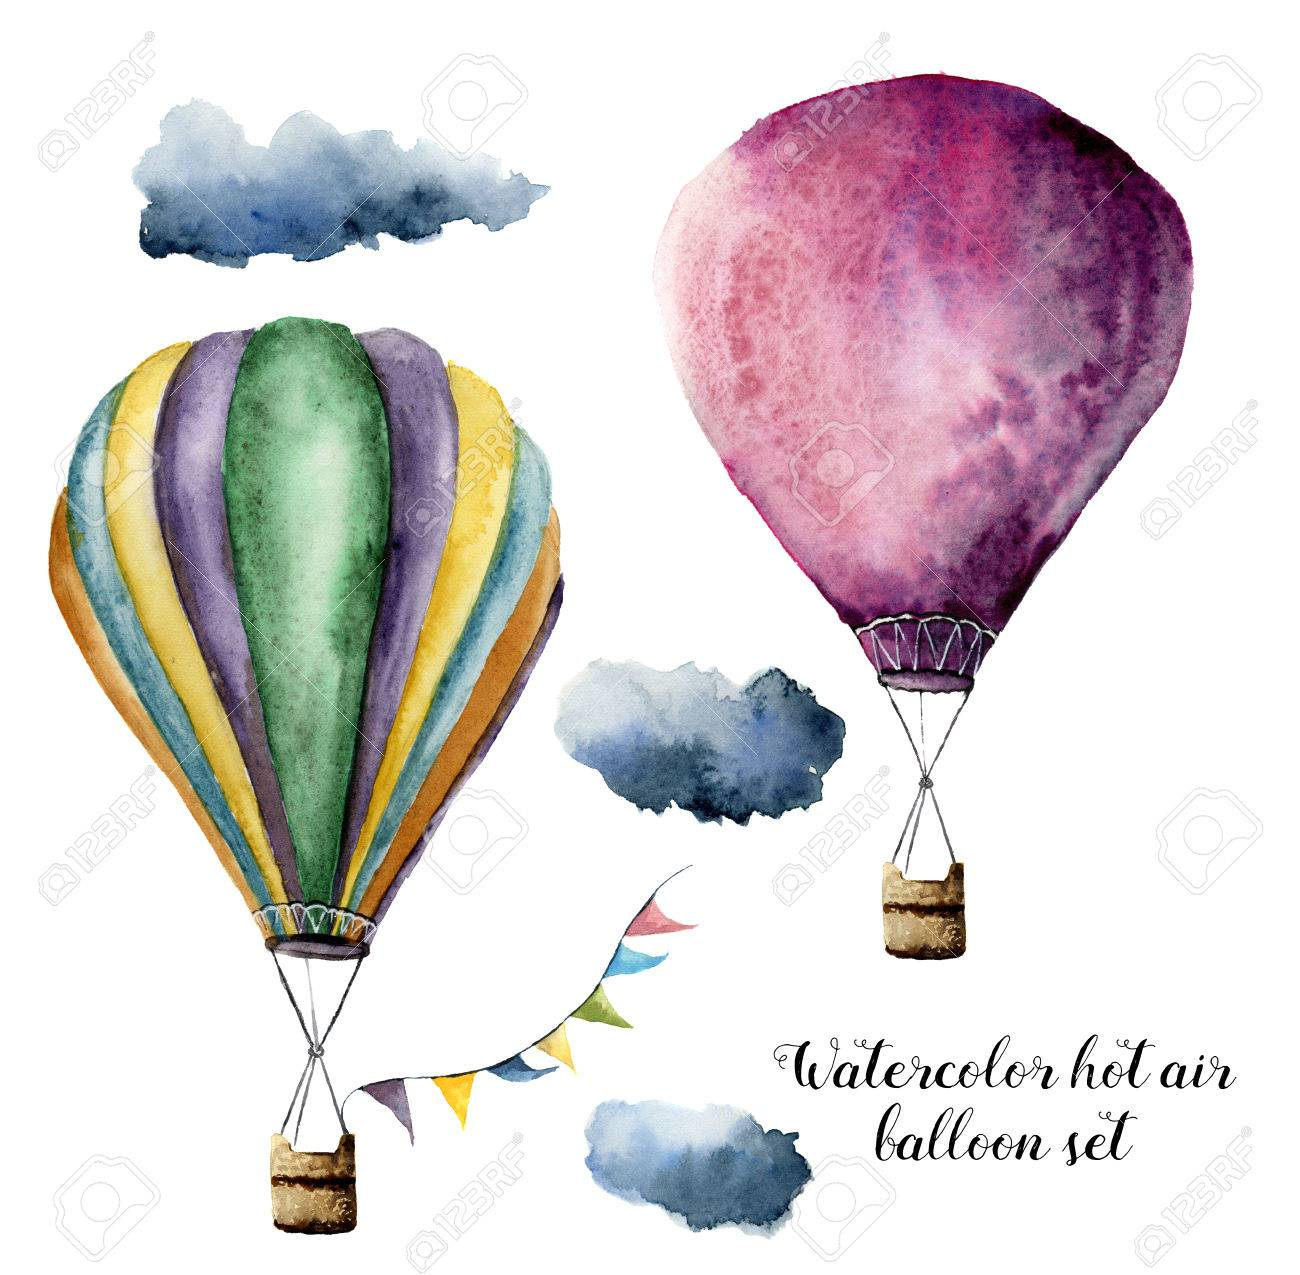 Watercolor hot air balloon set for design. Hand painted vintage air balloons with flags garlands and clouds. Illustrations isolated on white background - 71124137